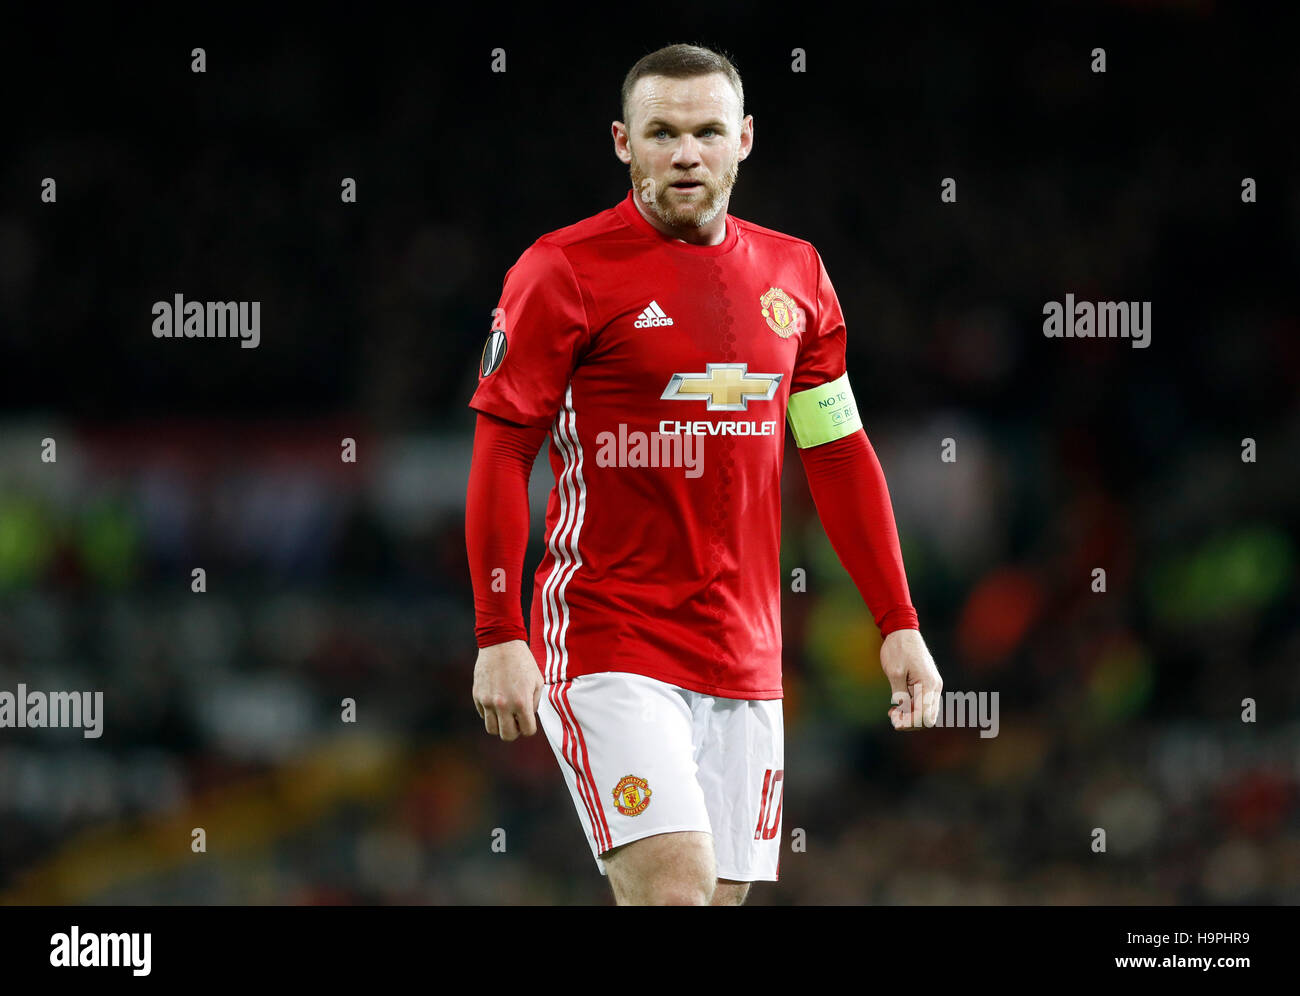 4a762e88d11 Manchester United s Wayne Rooney during the UEFA Europa League match at Old  Trafford